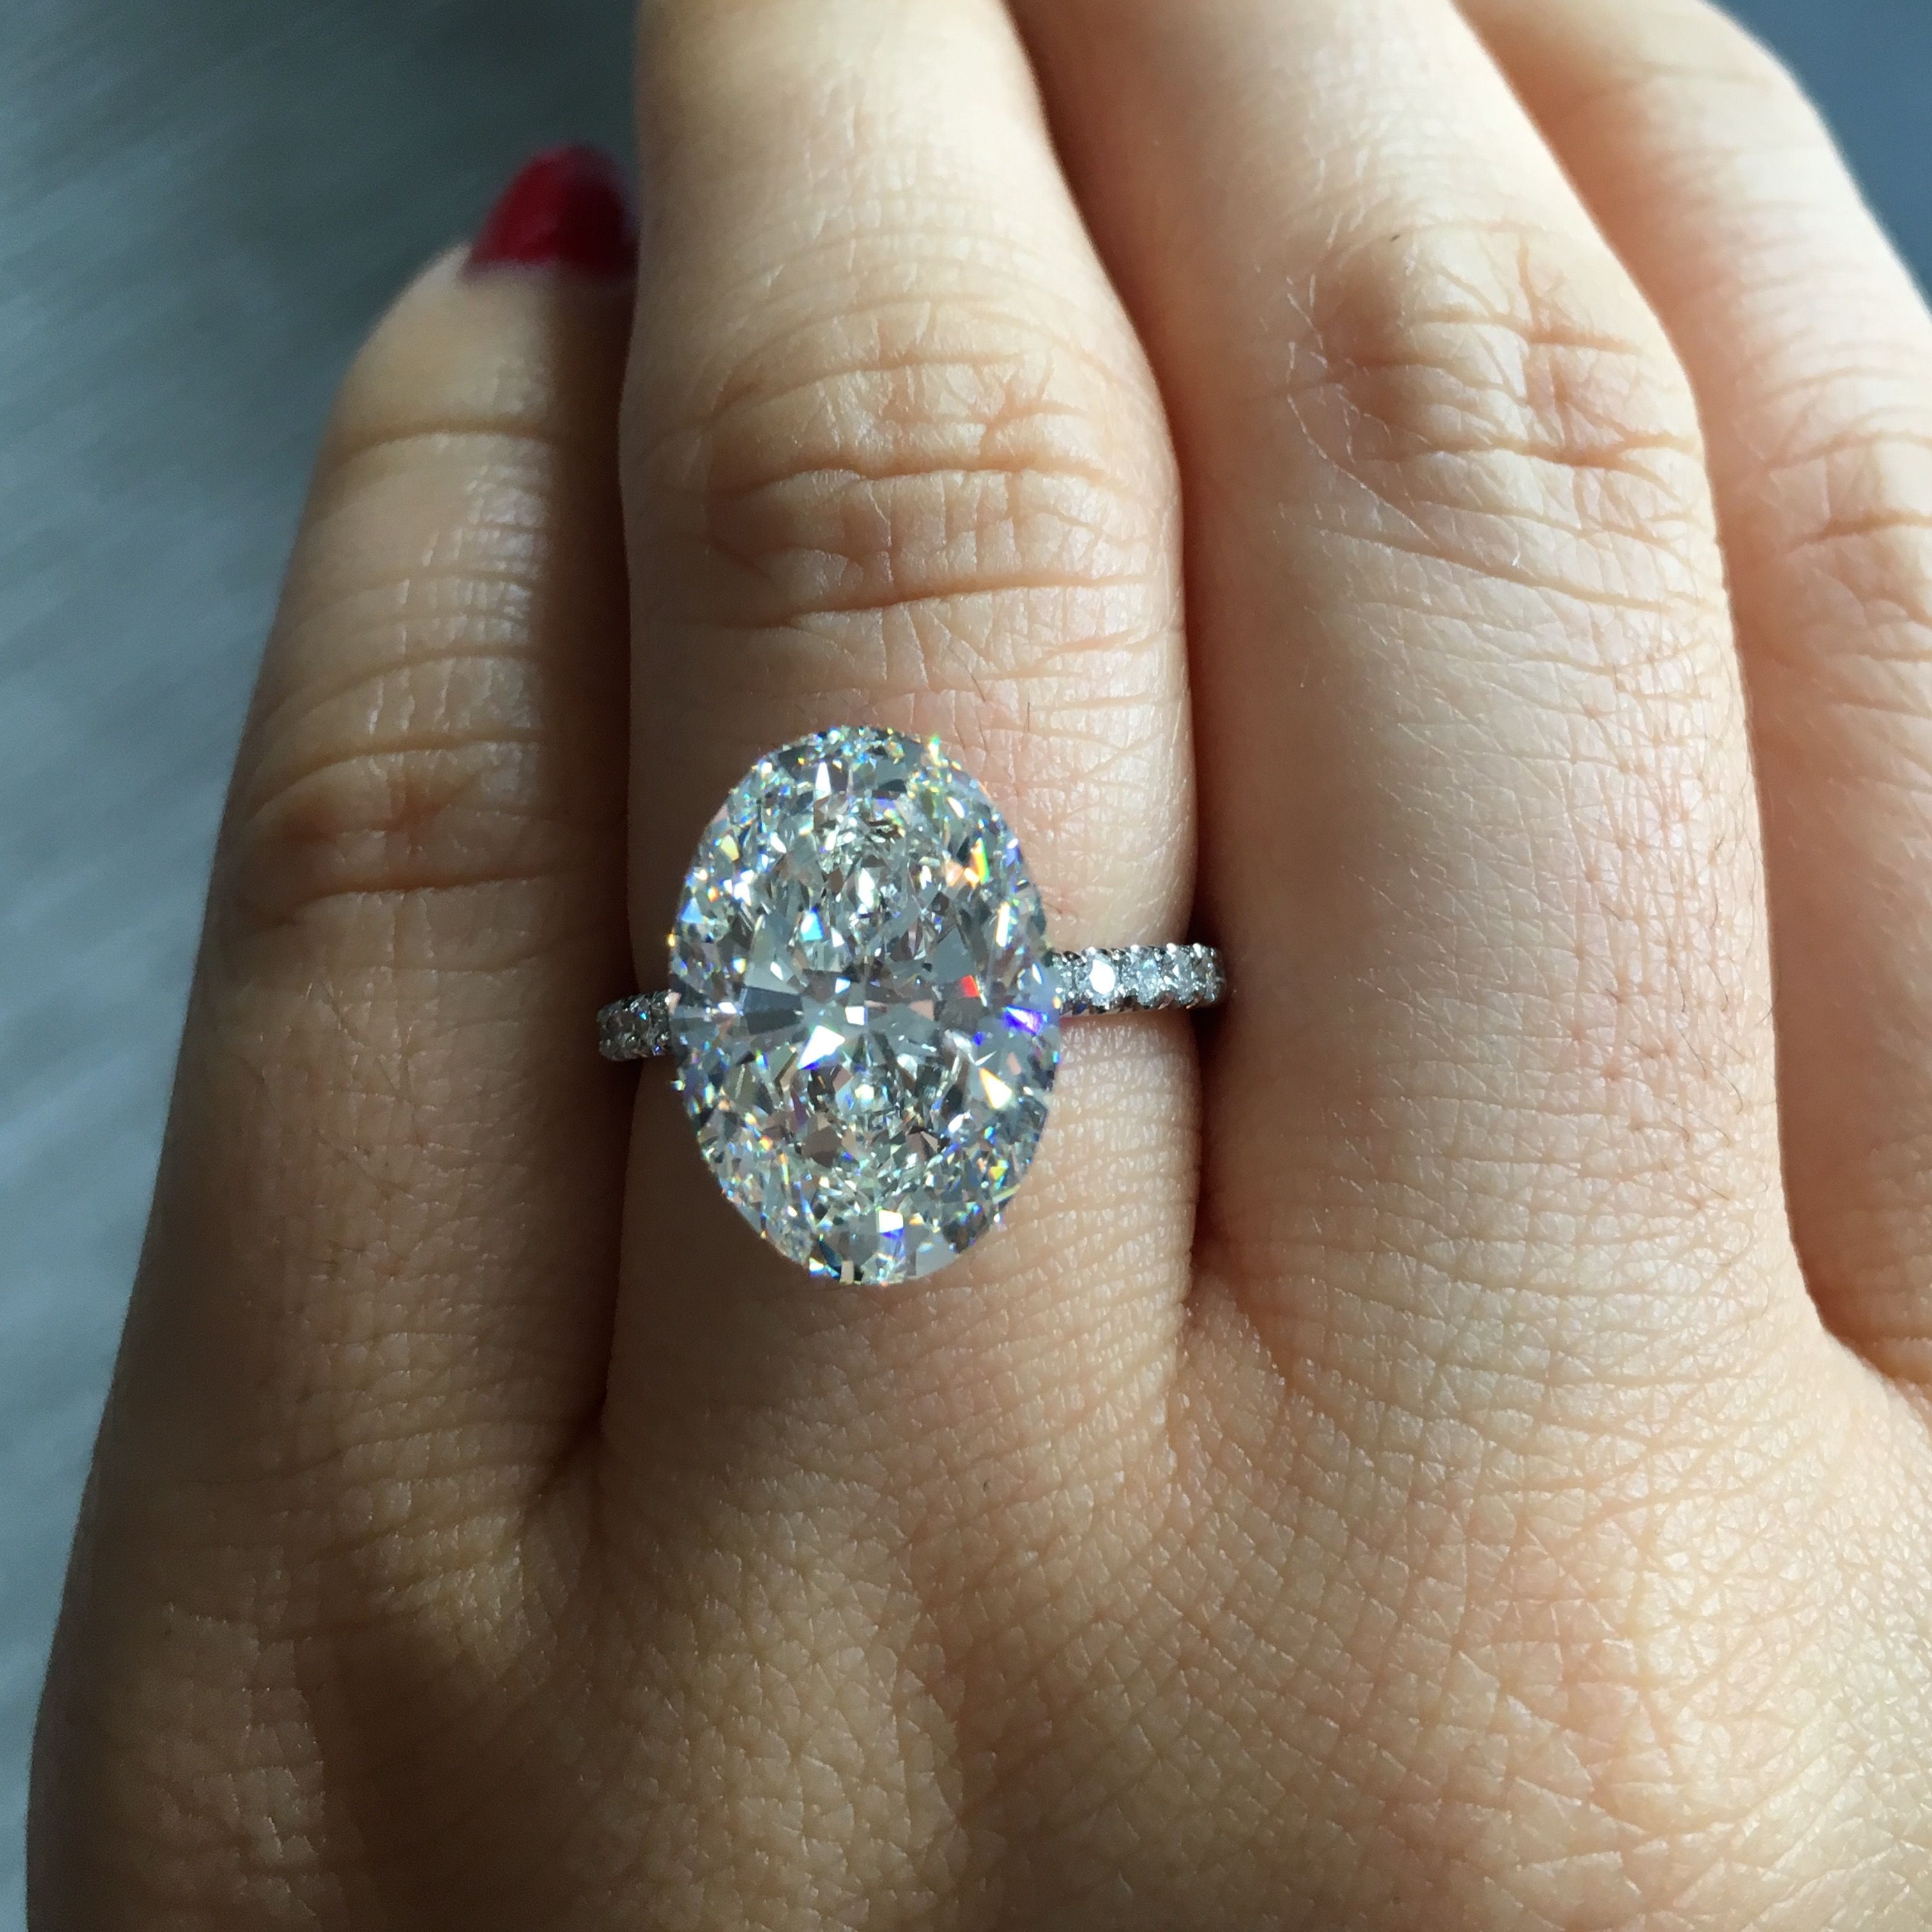 ANNA is a handcrafted Jean Dousset solitaire engagement